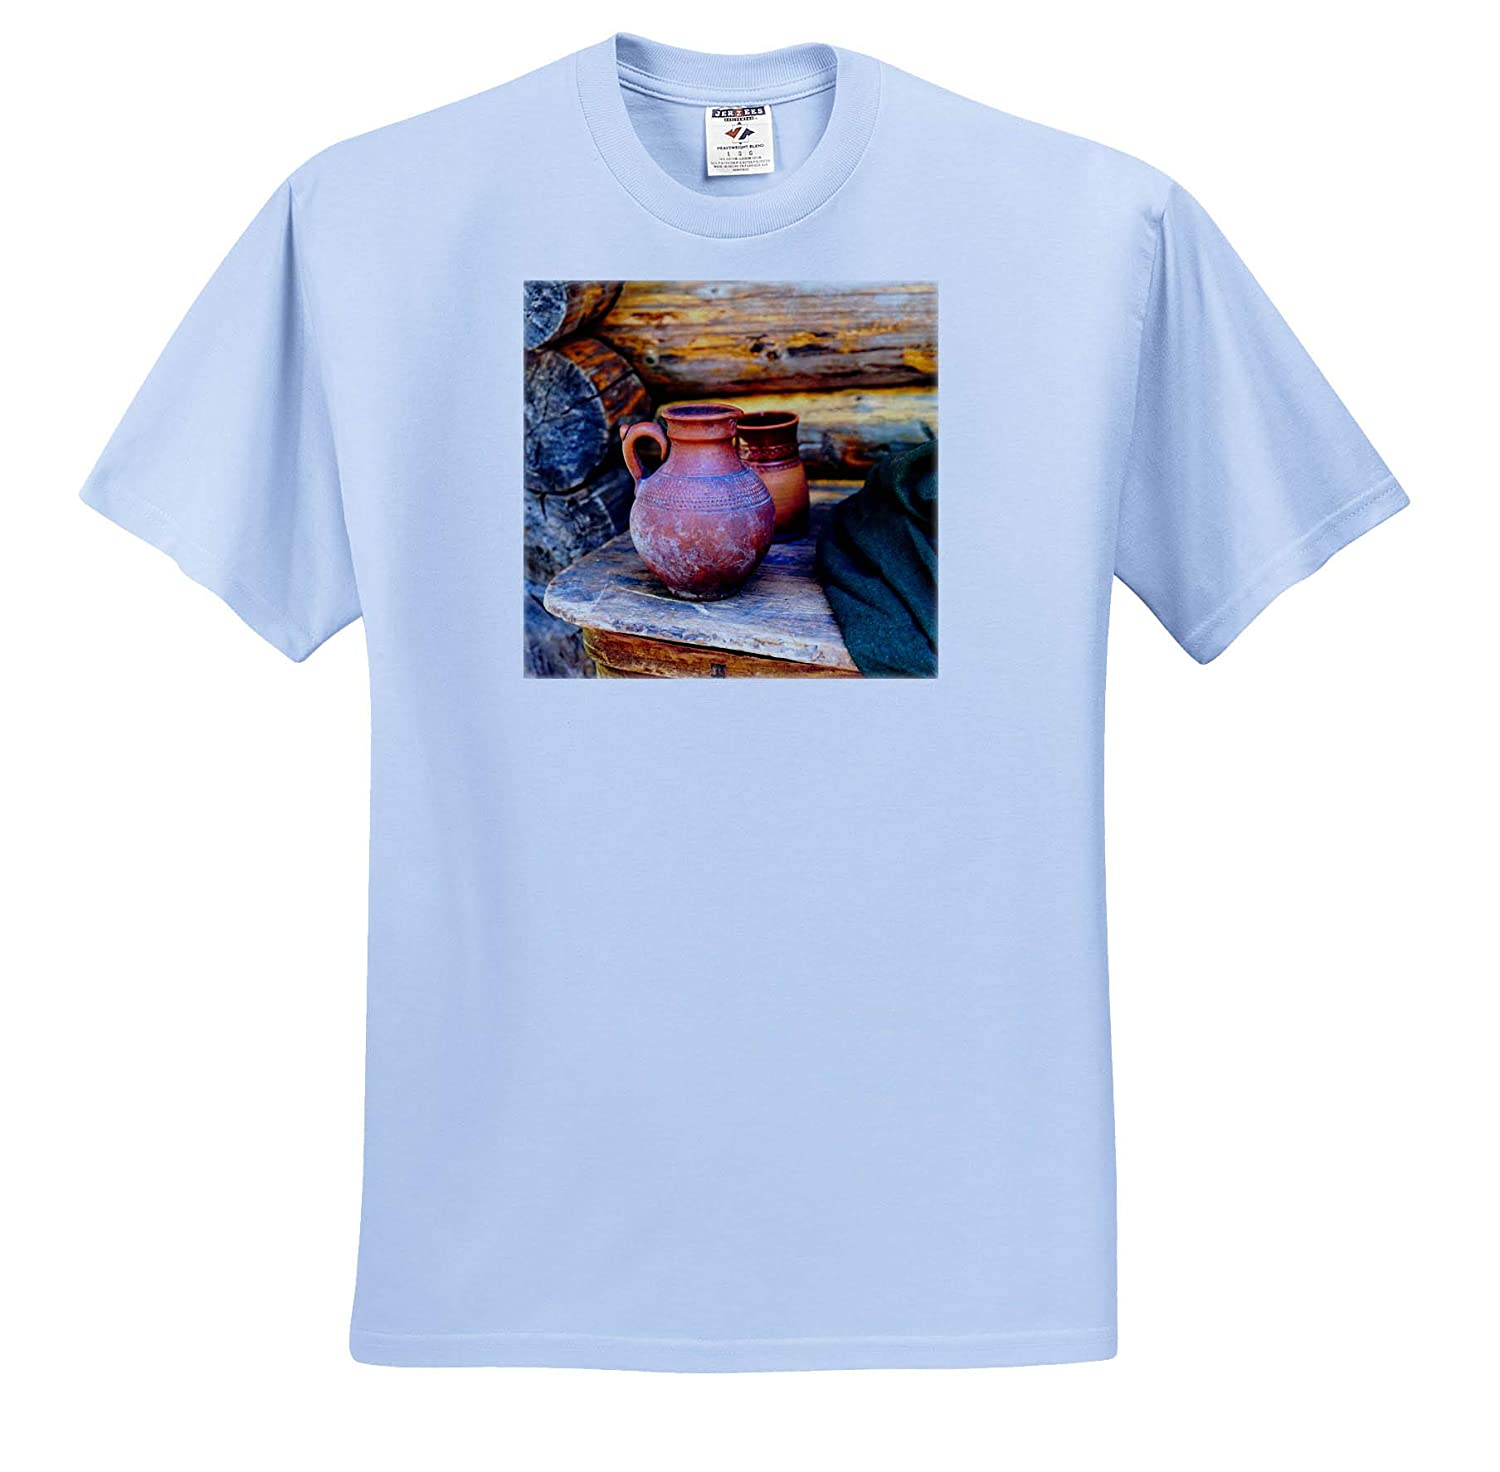 Green Cloth Still-Life Ceramic Pitchers on a Wooden Table by The Log Wall T-Shirts 3dRose Alexis Photography